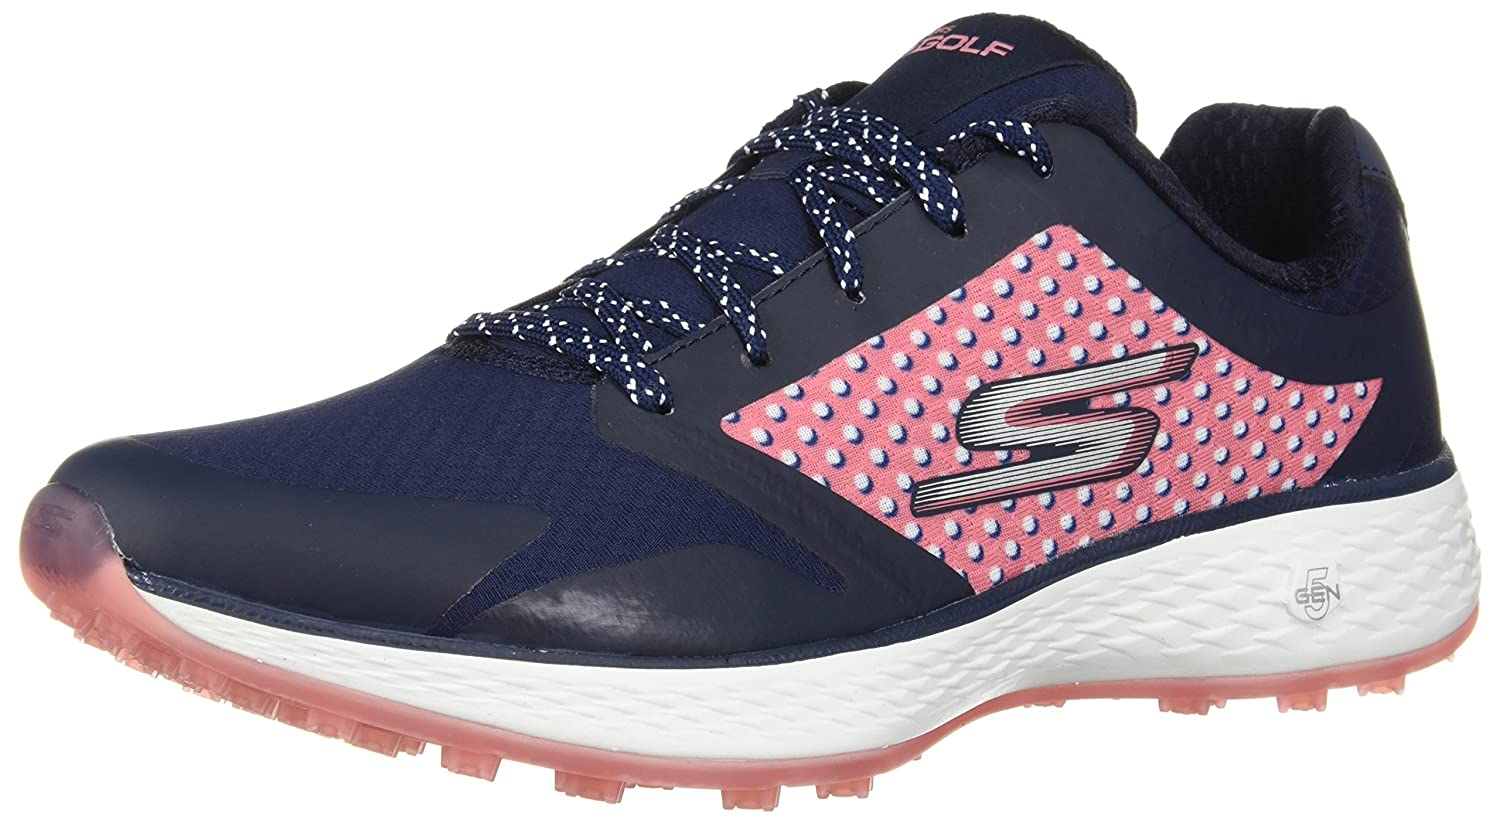 Skechers 2018 Go Golf Eagle LEAD Womens Spikeless Shoes 14864 Charcoal/Blue 5.5UK iI4DAxNV4